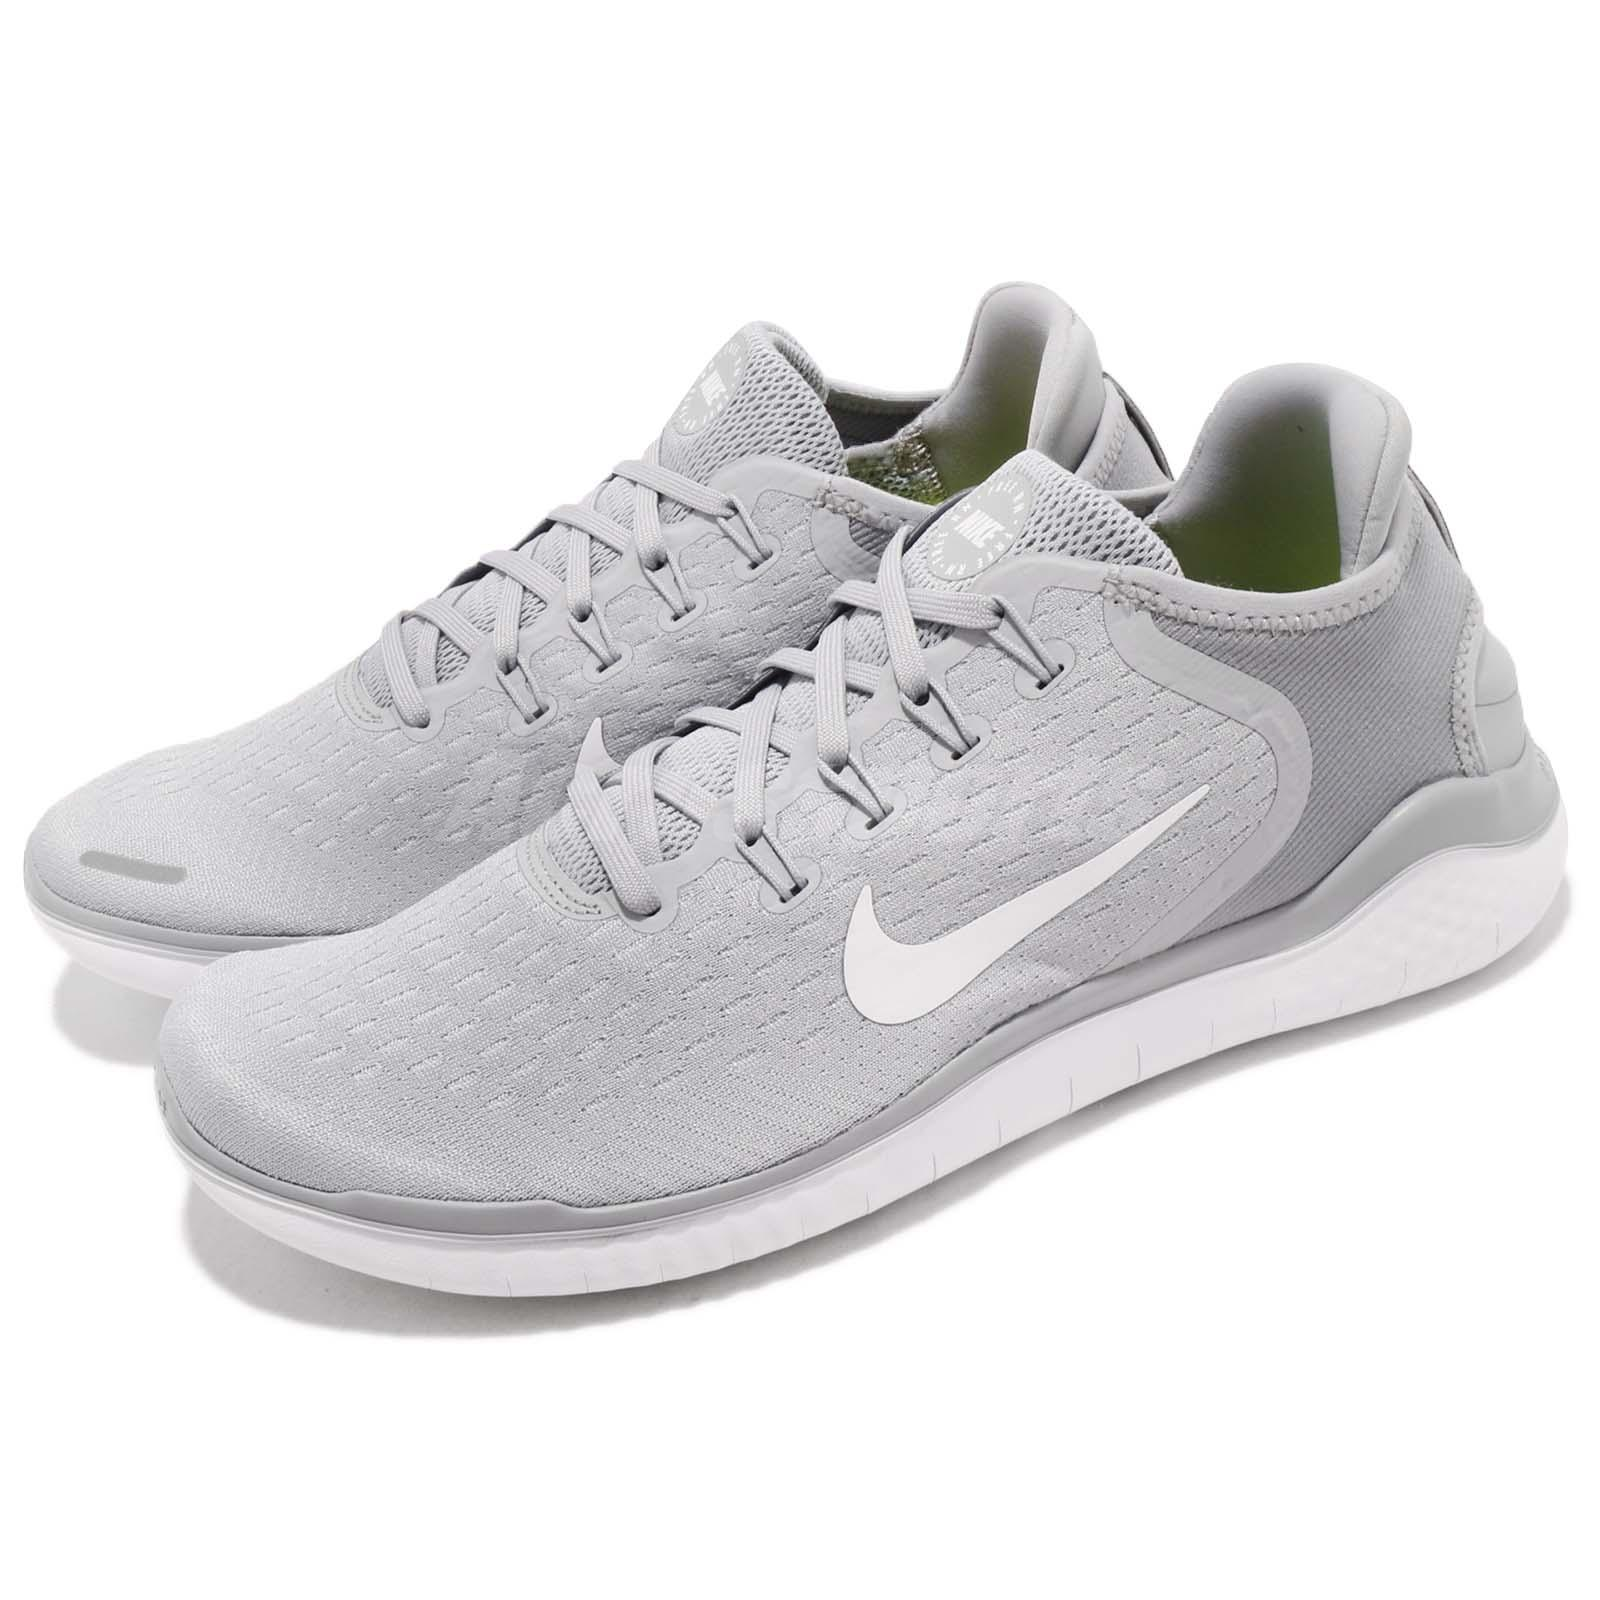 e91aceb2129 Details about Nike Free RN 2018 Grey White Run Barefoot Mens Running Shoes  Sneakers 942836-003